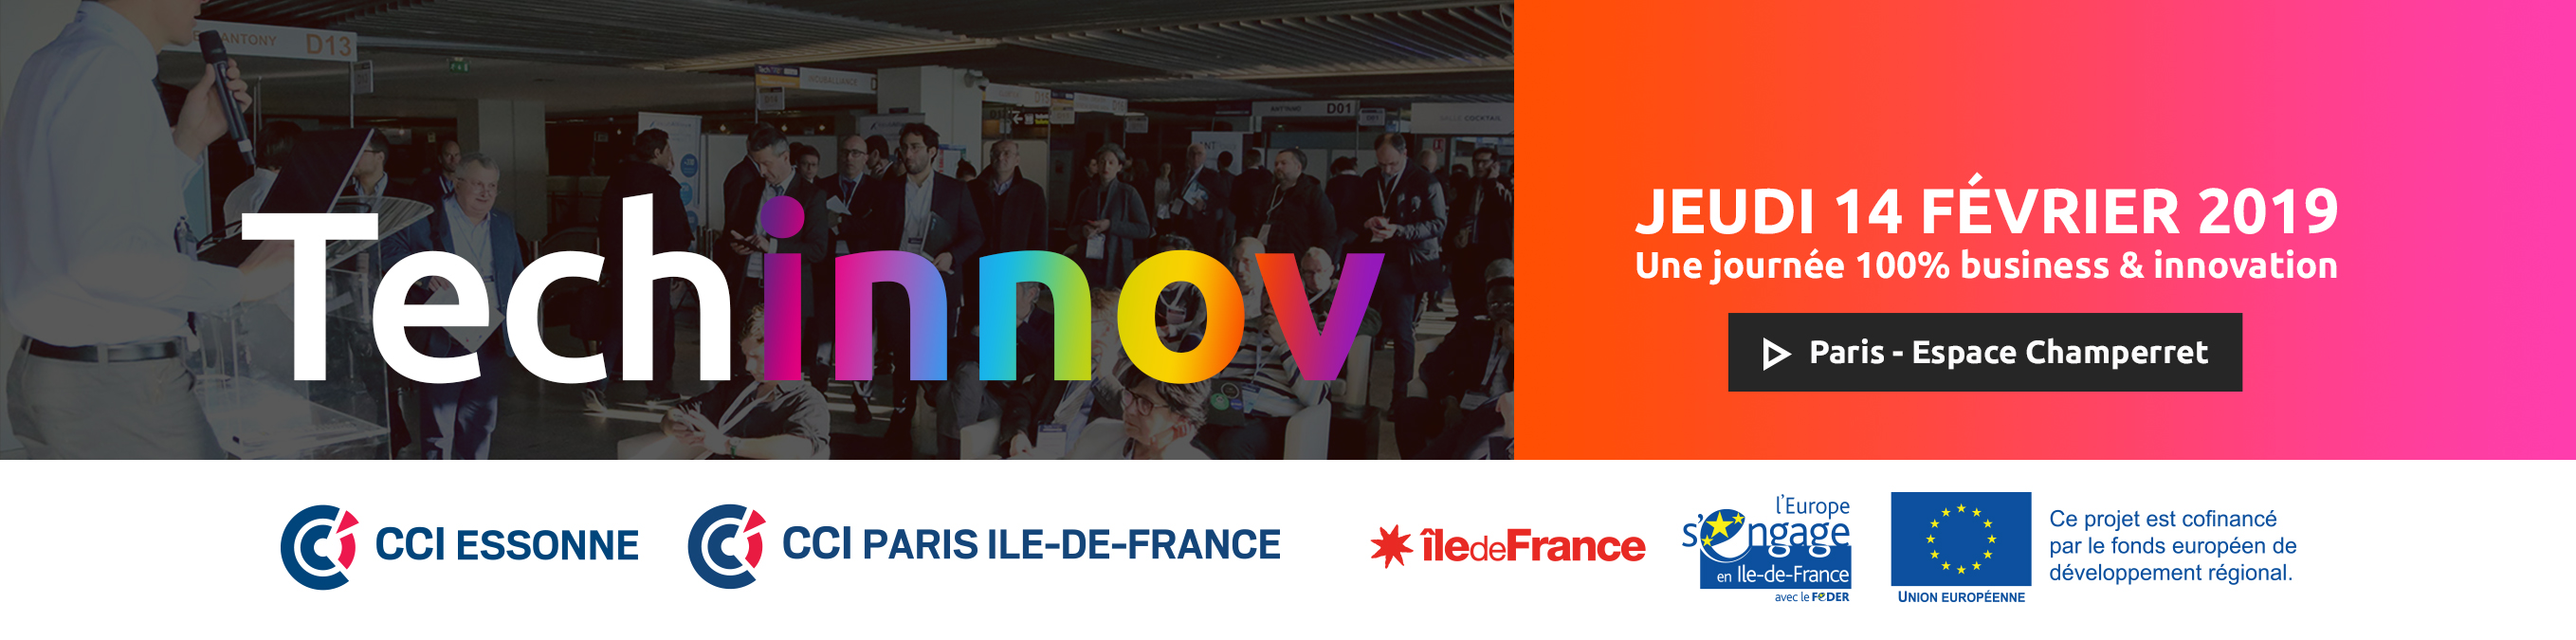 techinnov-2019-salon-innovation-genaris-partenaire